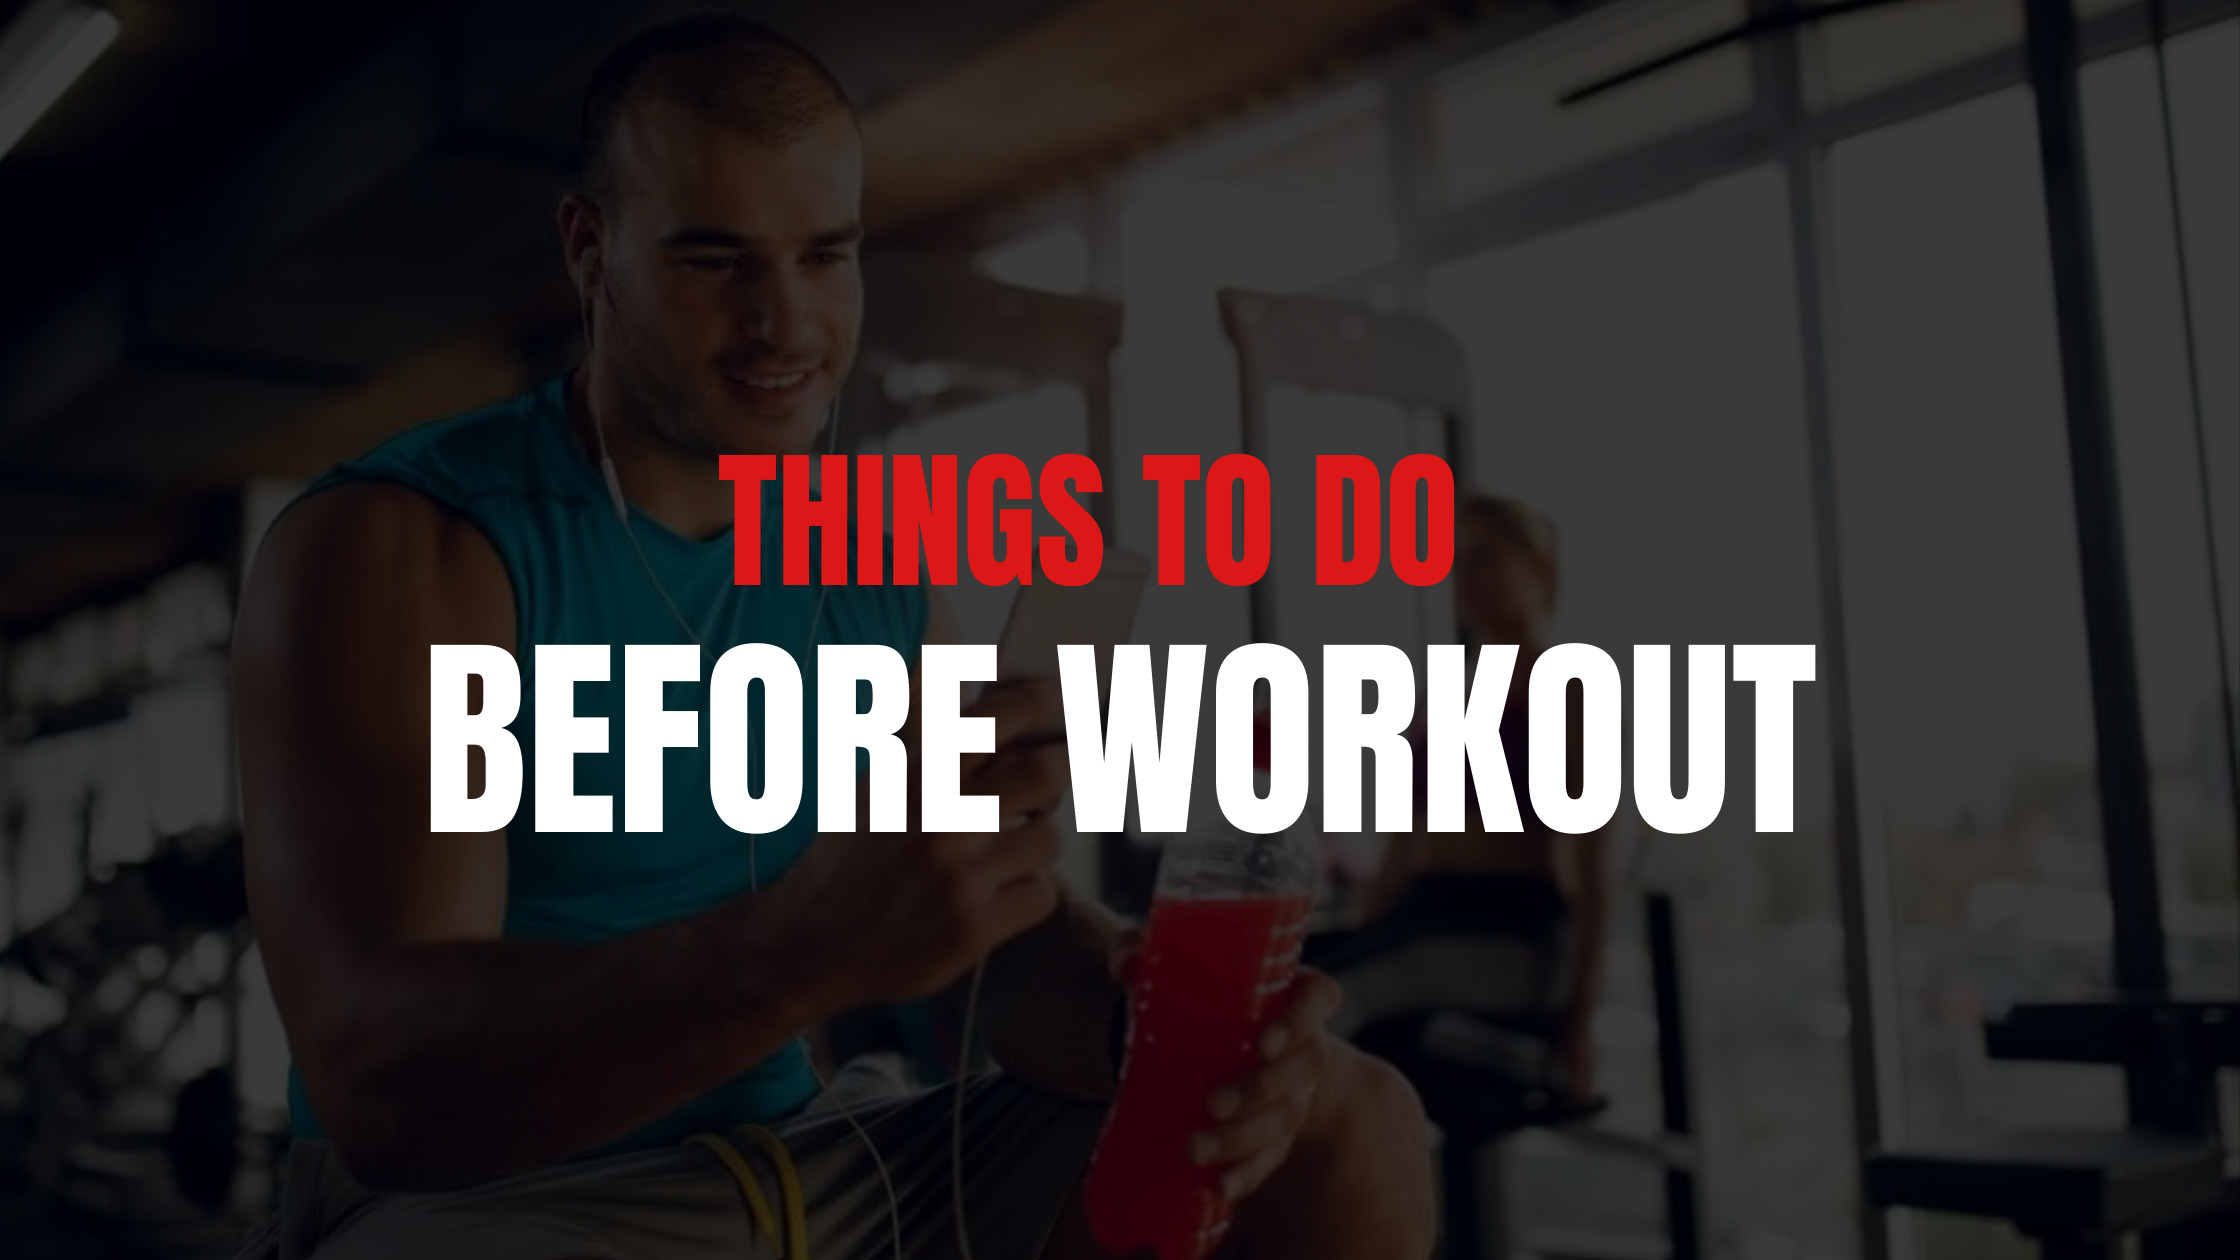 Things to do before workout